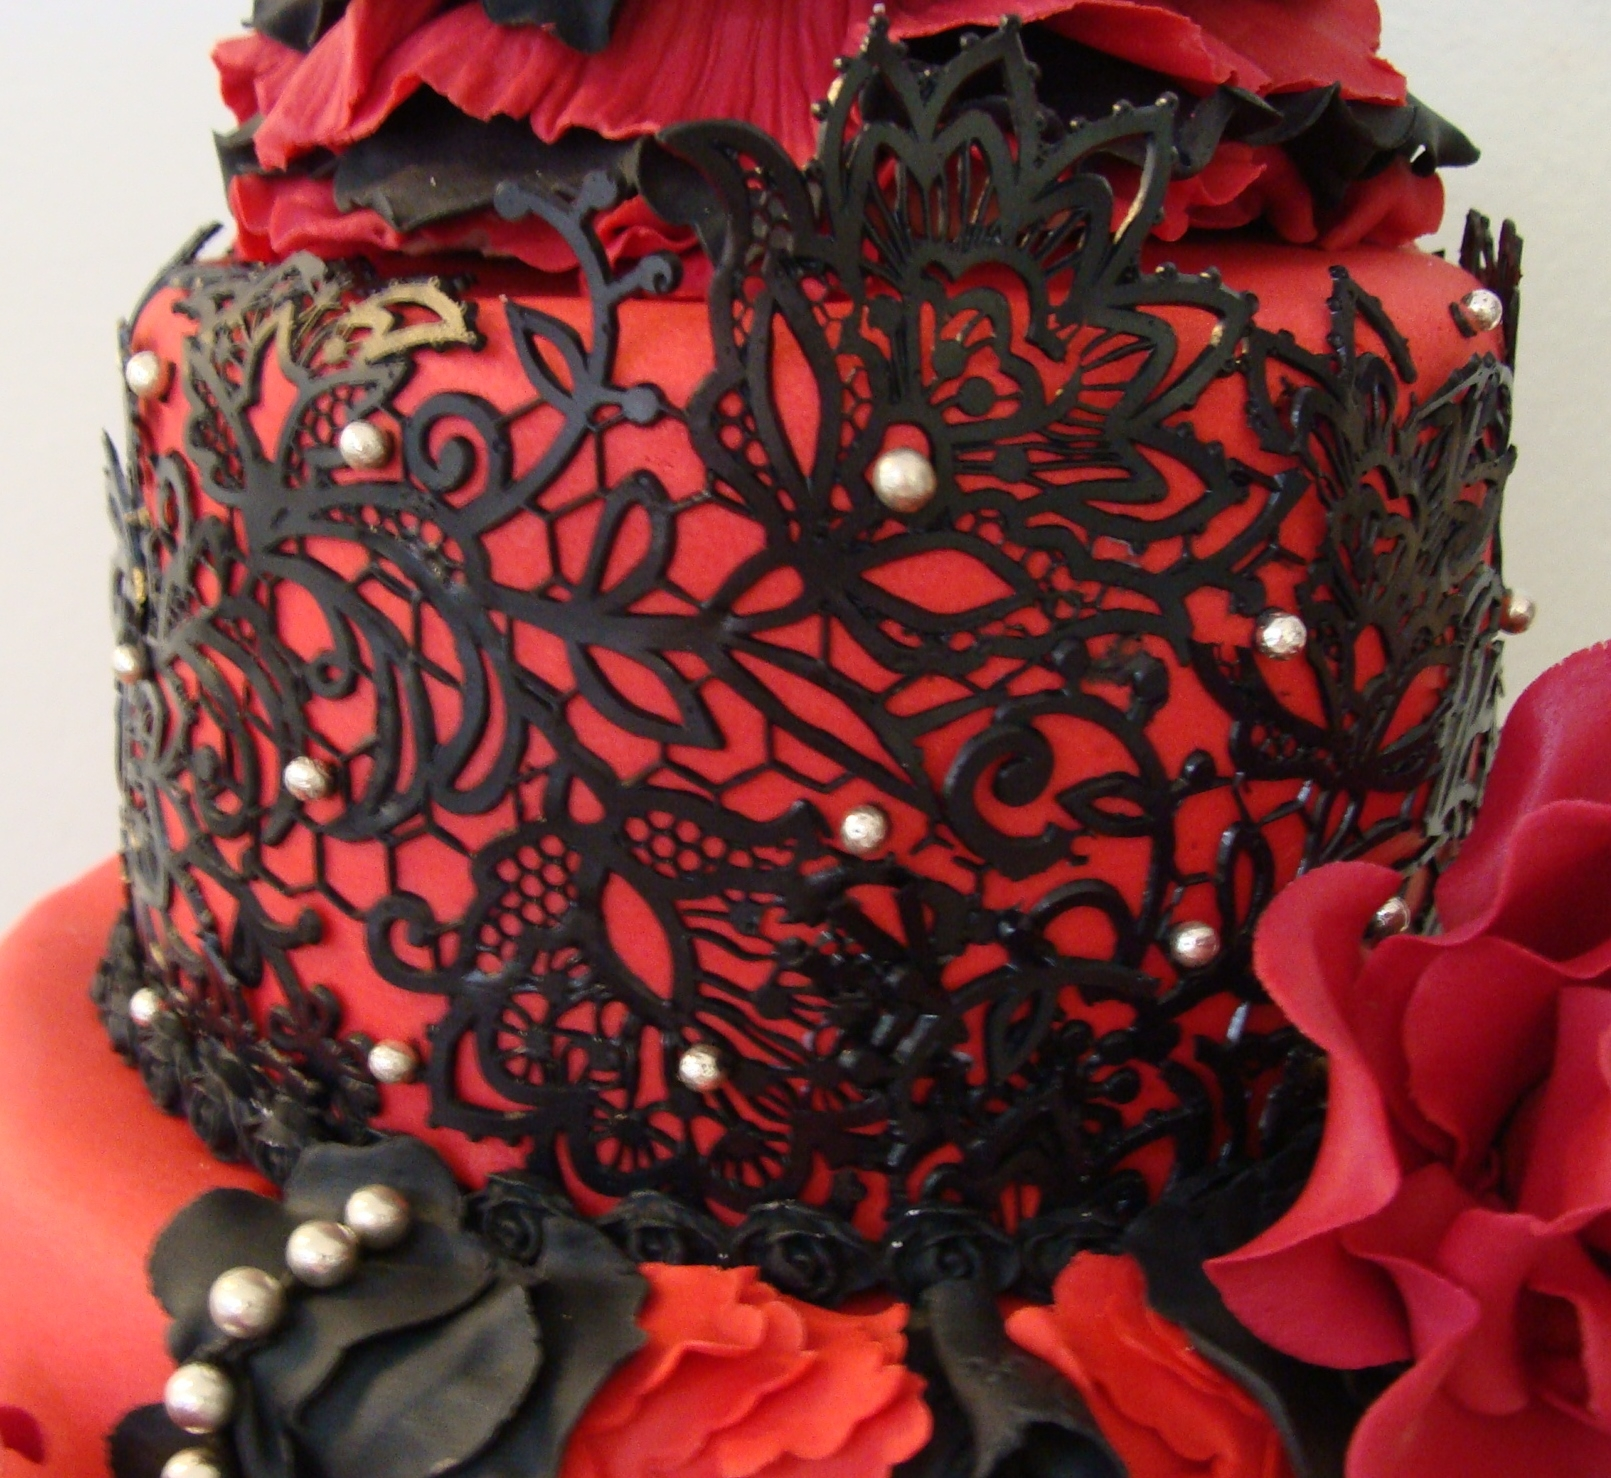 Spanish Dancer Cake